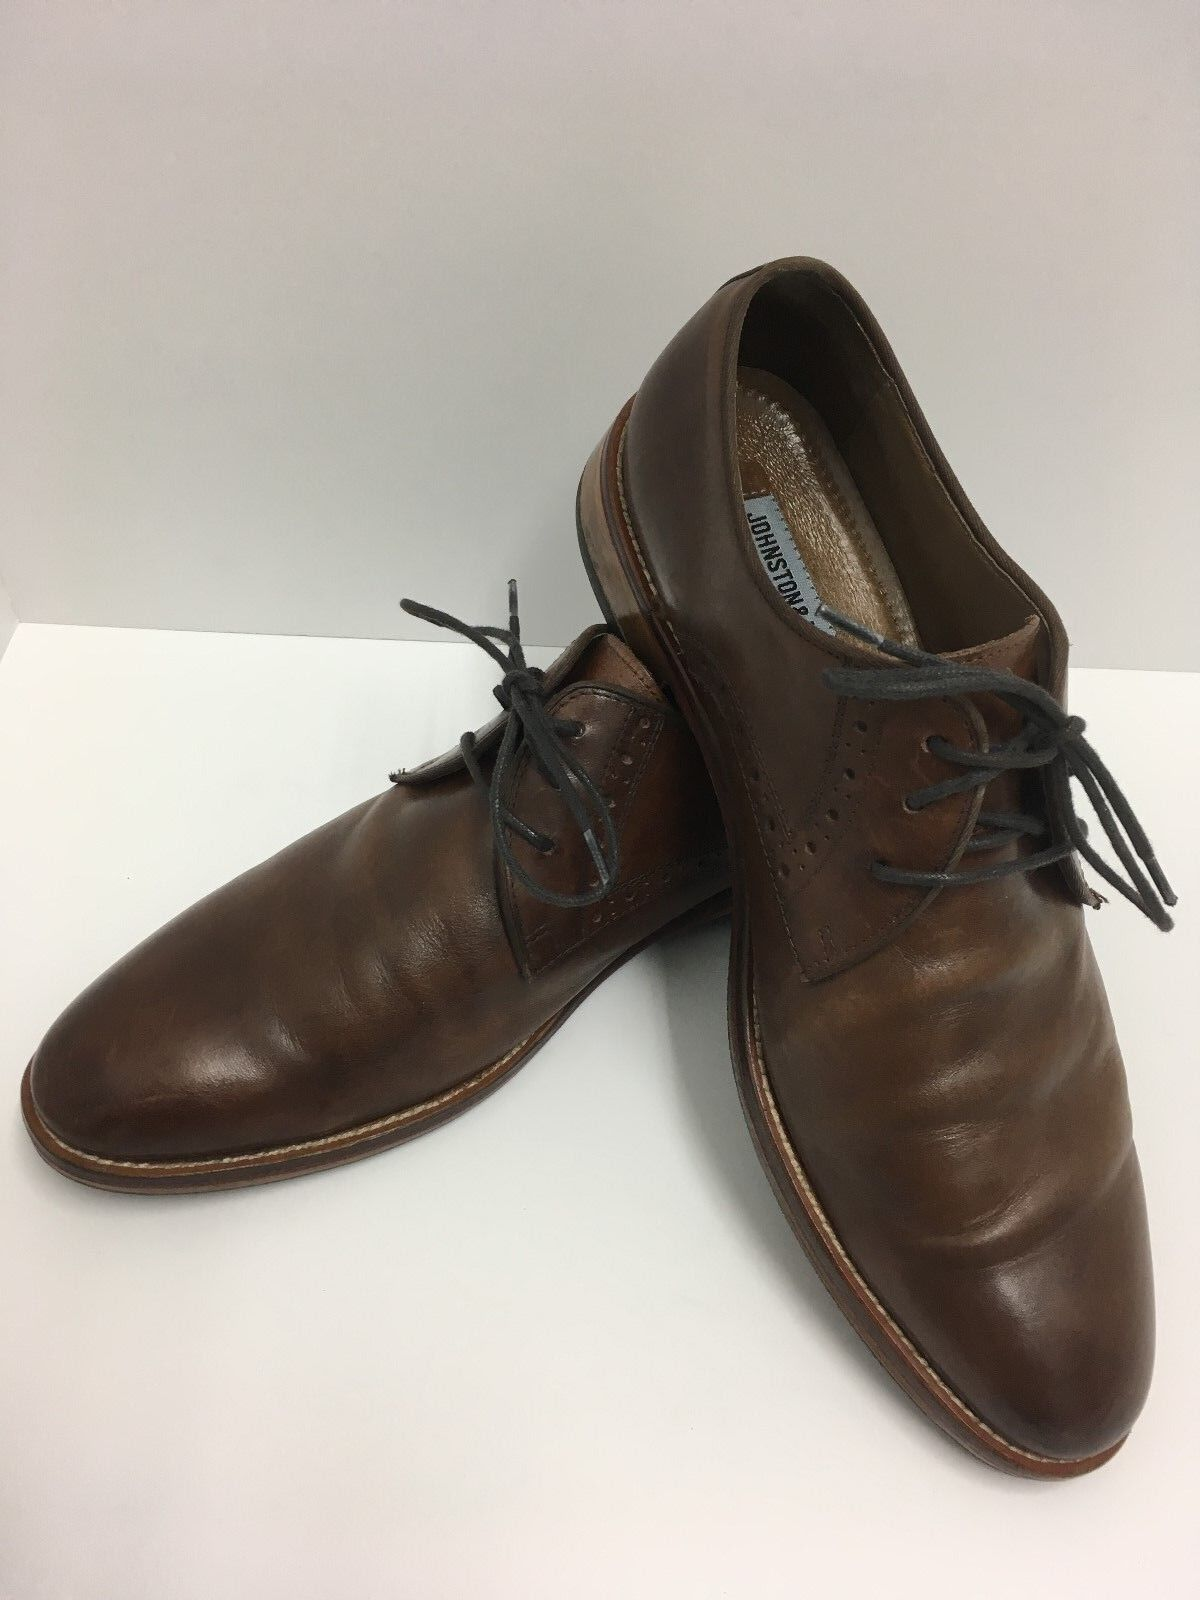 JOHNSTON & MURPHY Calf Skin CONRAD 20-2234 Dress Leather MEN'S SHOES Size 10 M